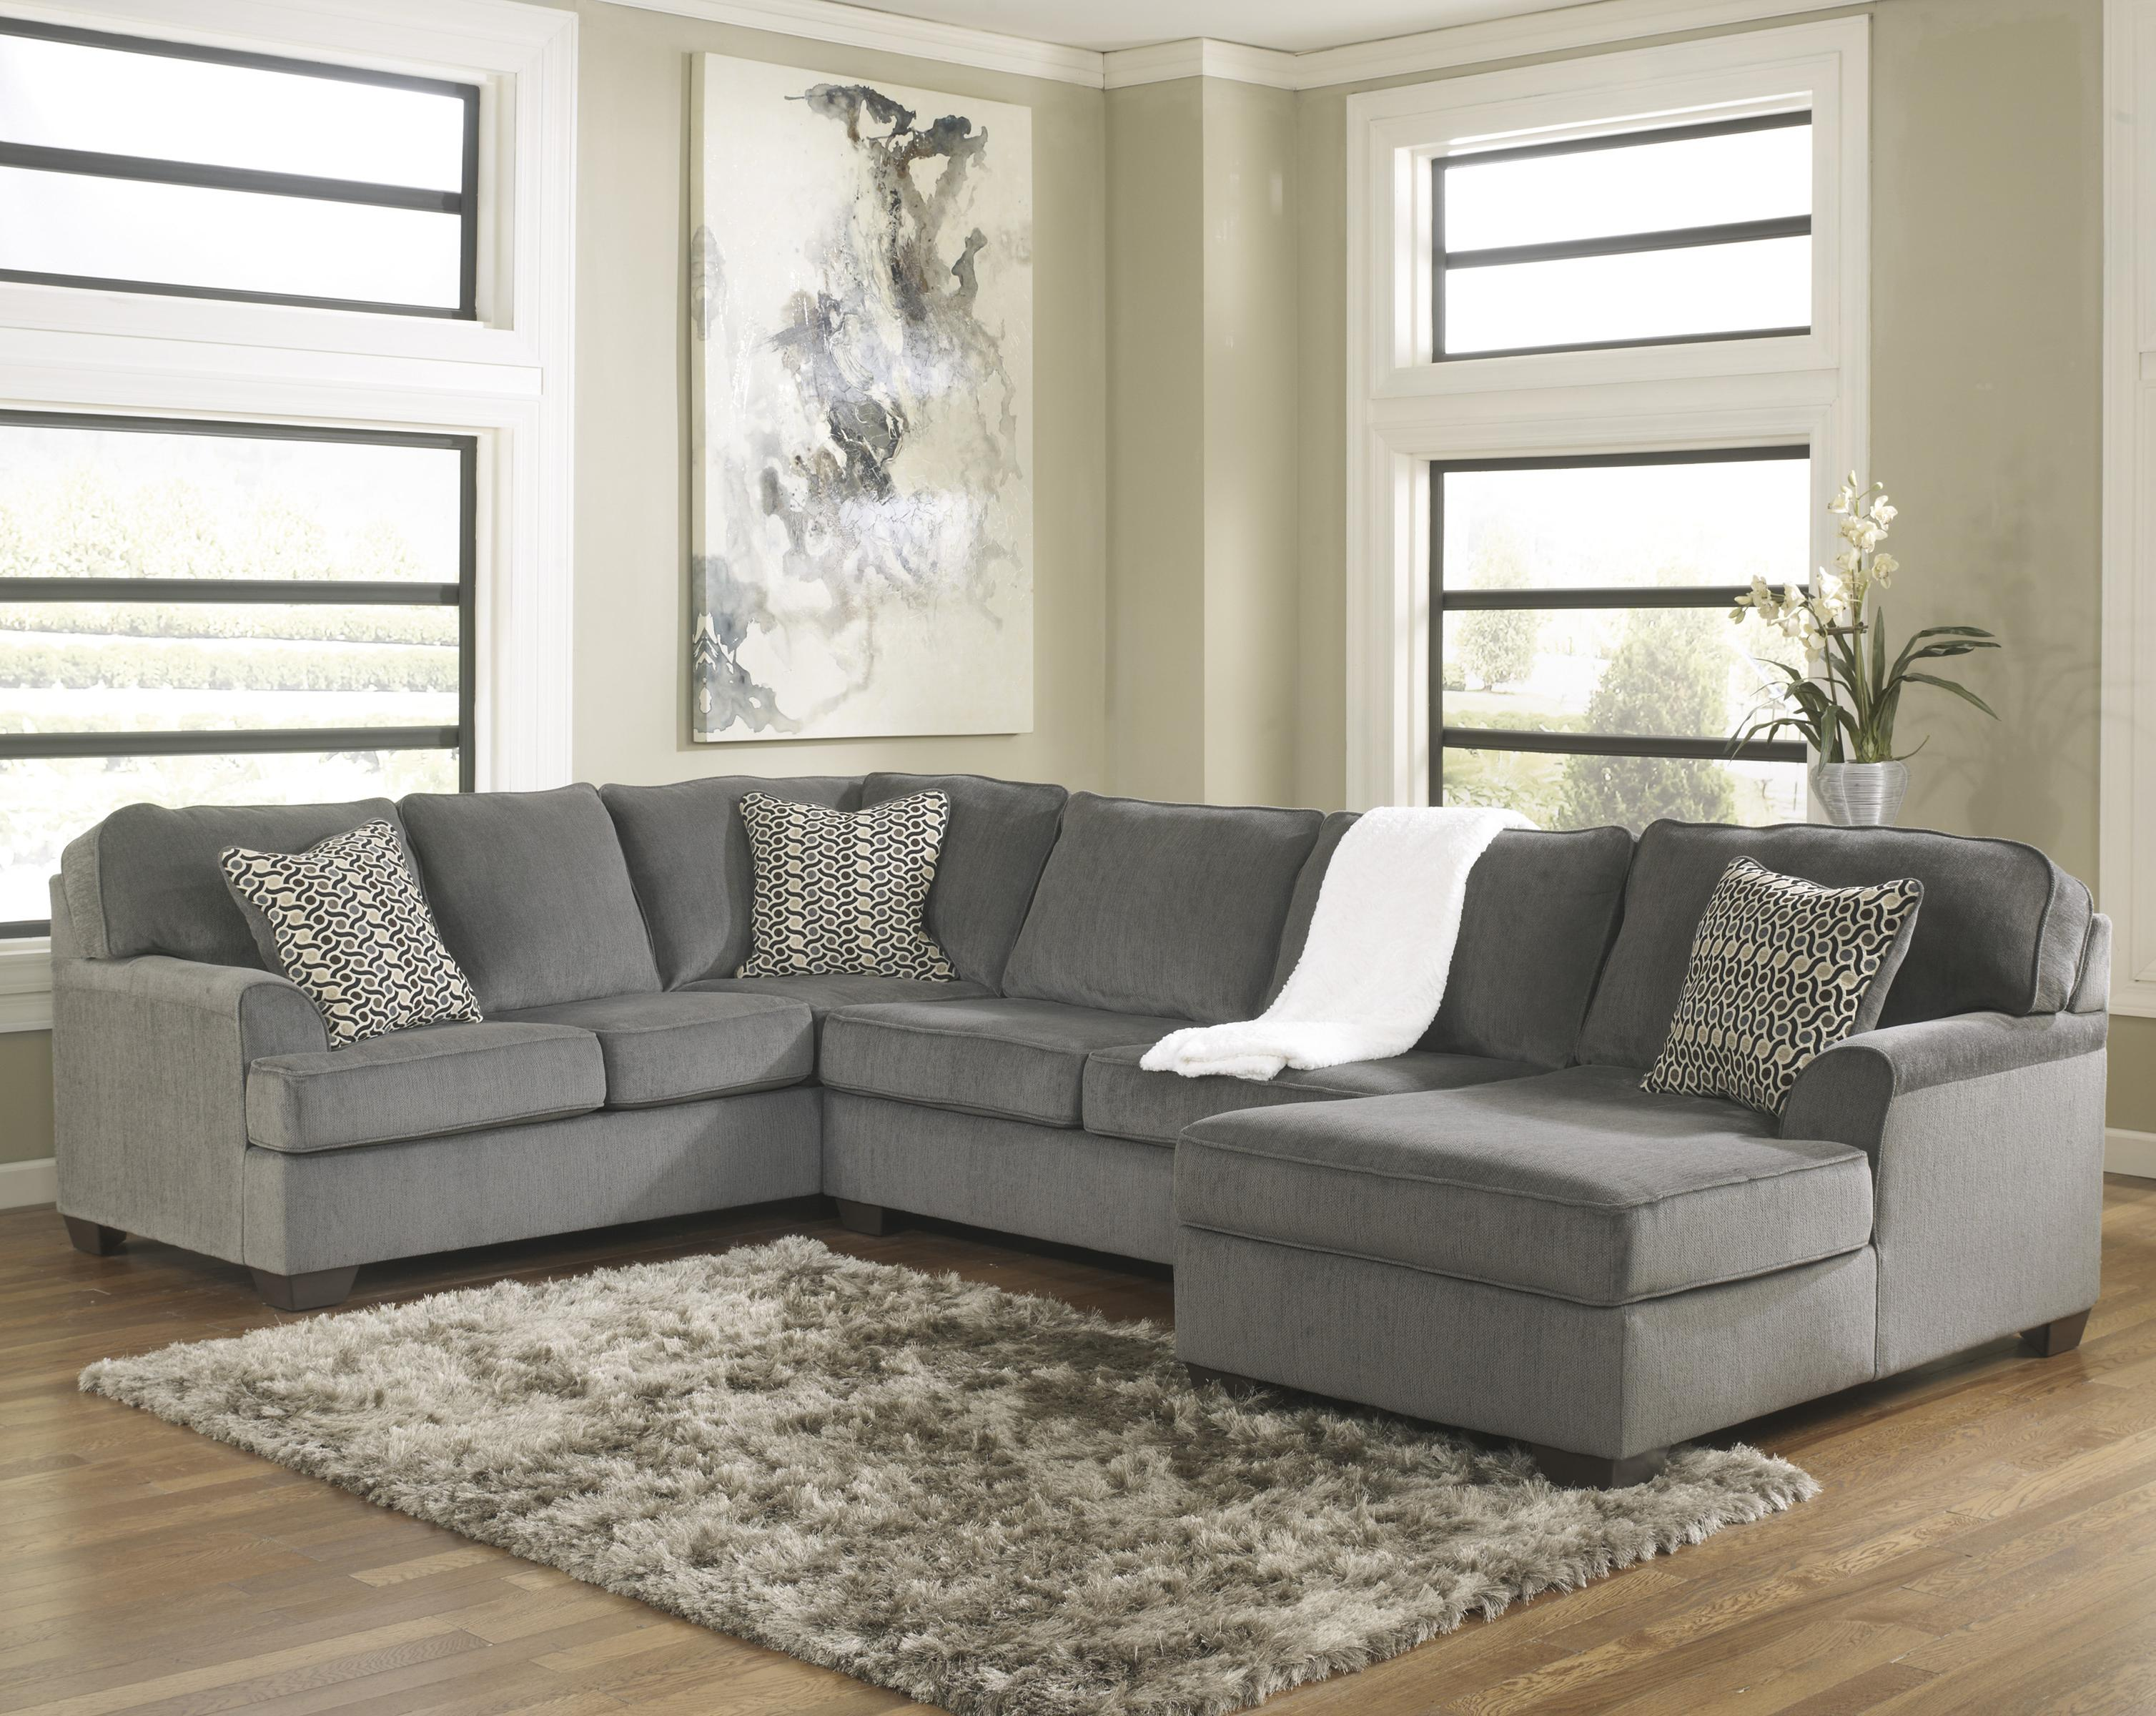 sectional vs sofa alessia leather ashley furniture loric smoke contemporary 3 piece